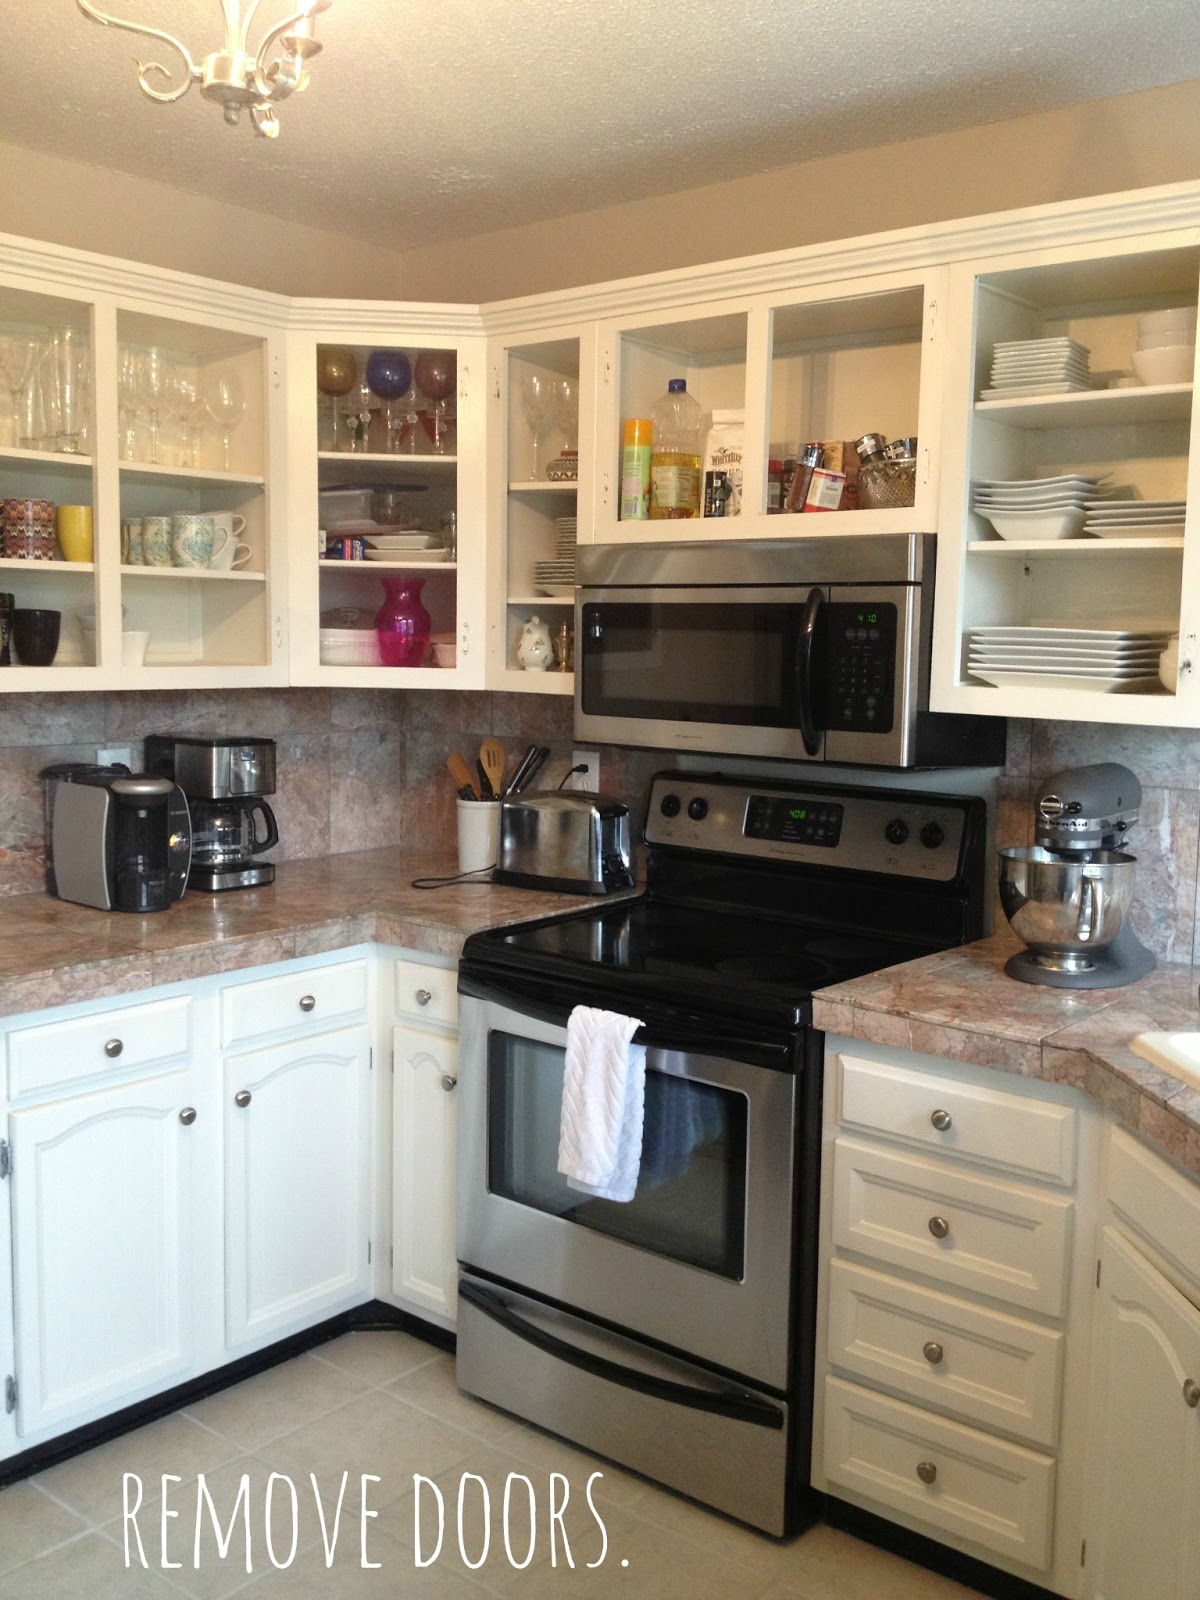 10 easy steps to paint kitchen cabinets buy kitchen cabinet doors LiveLoveDIY